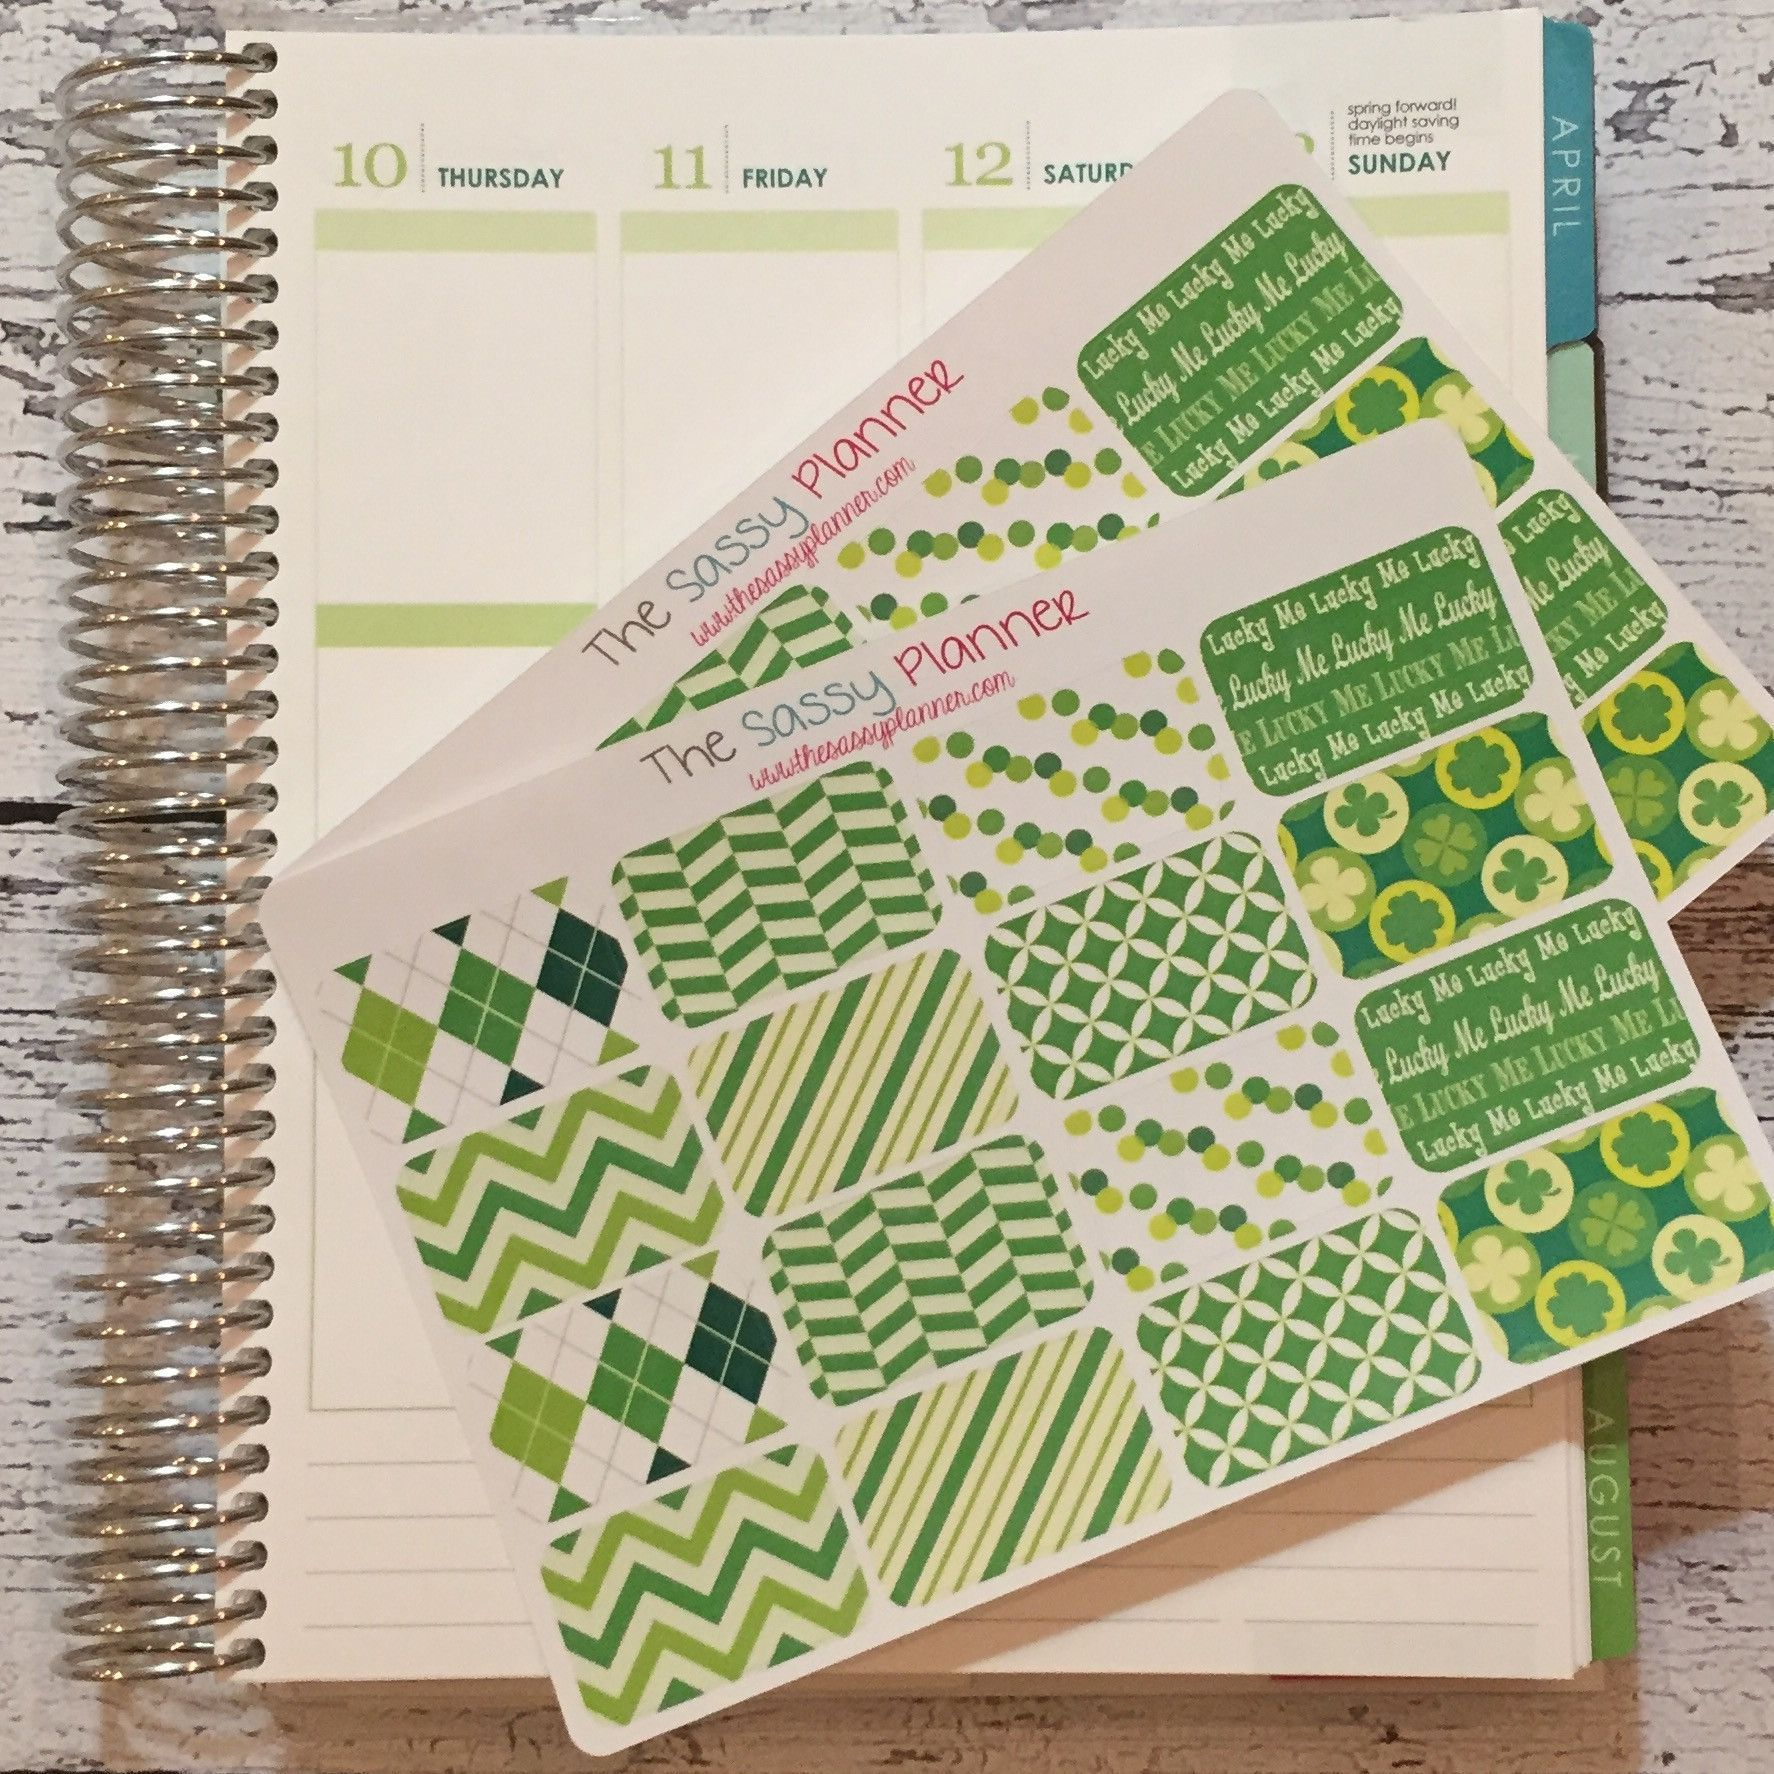 NEW! March Monthly Half Box Stickers for Erin Condren Life Planner/Plum Paper Planner - Set of 32